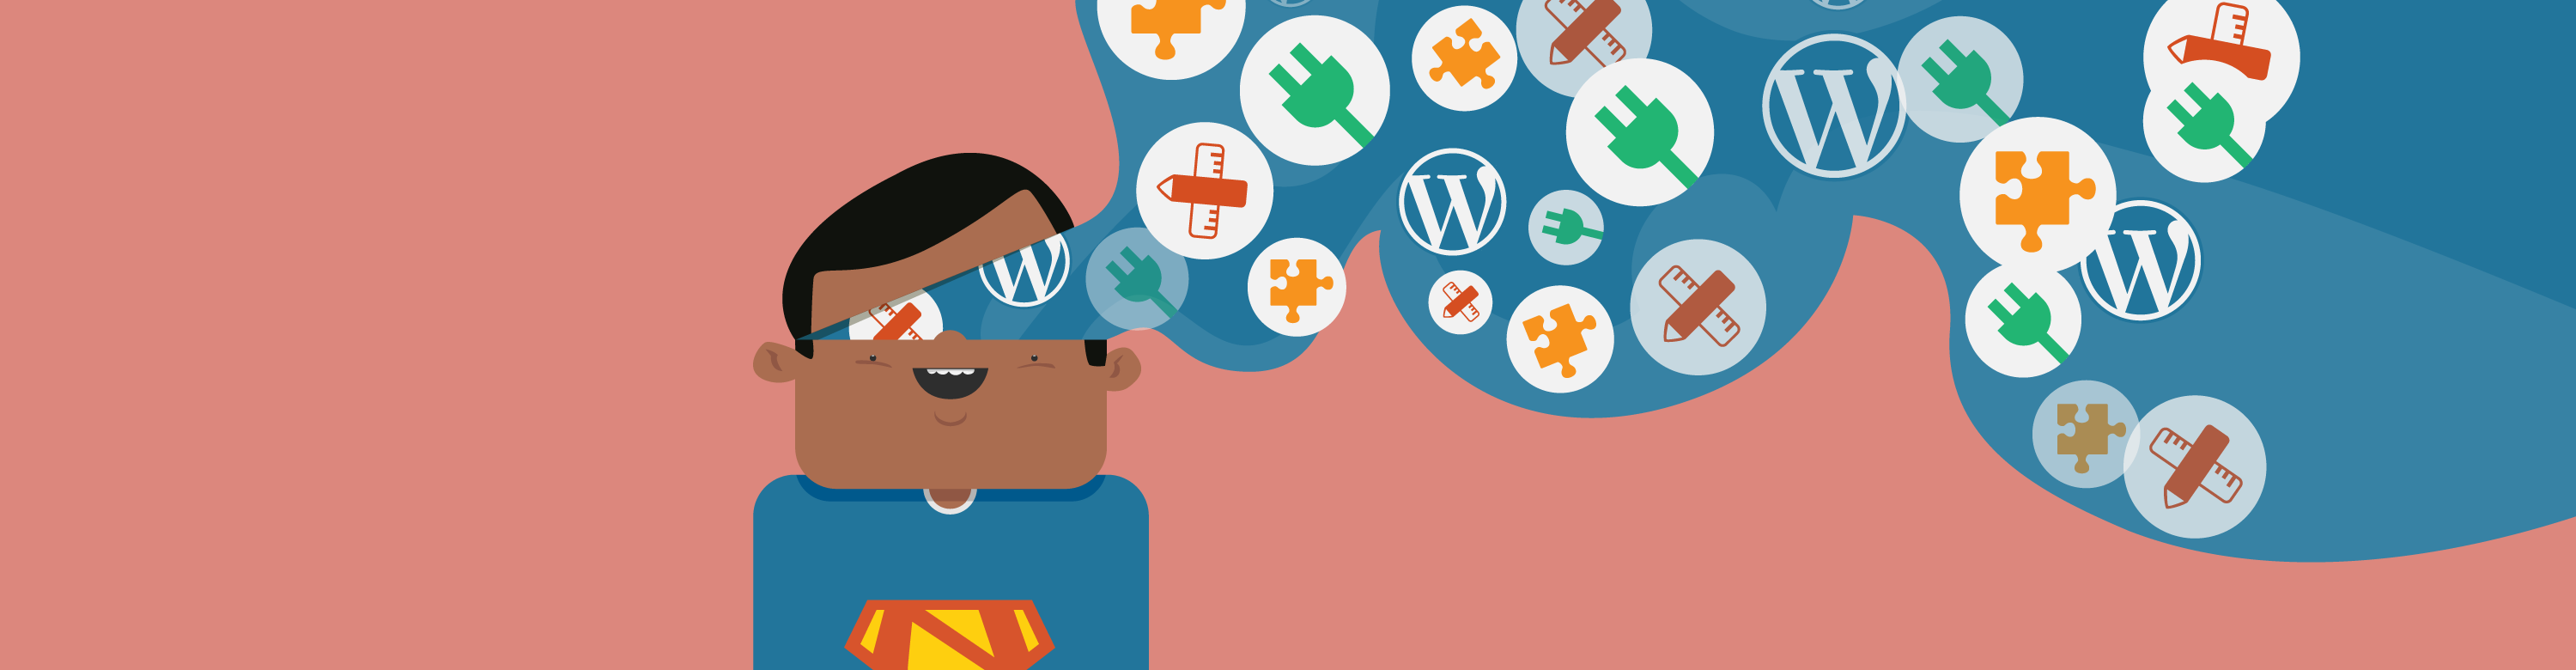 37 Essential WordPress Plugins You Should Install If You Haven't Already